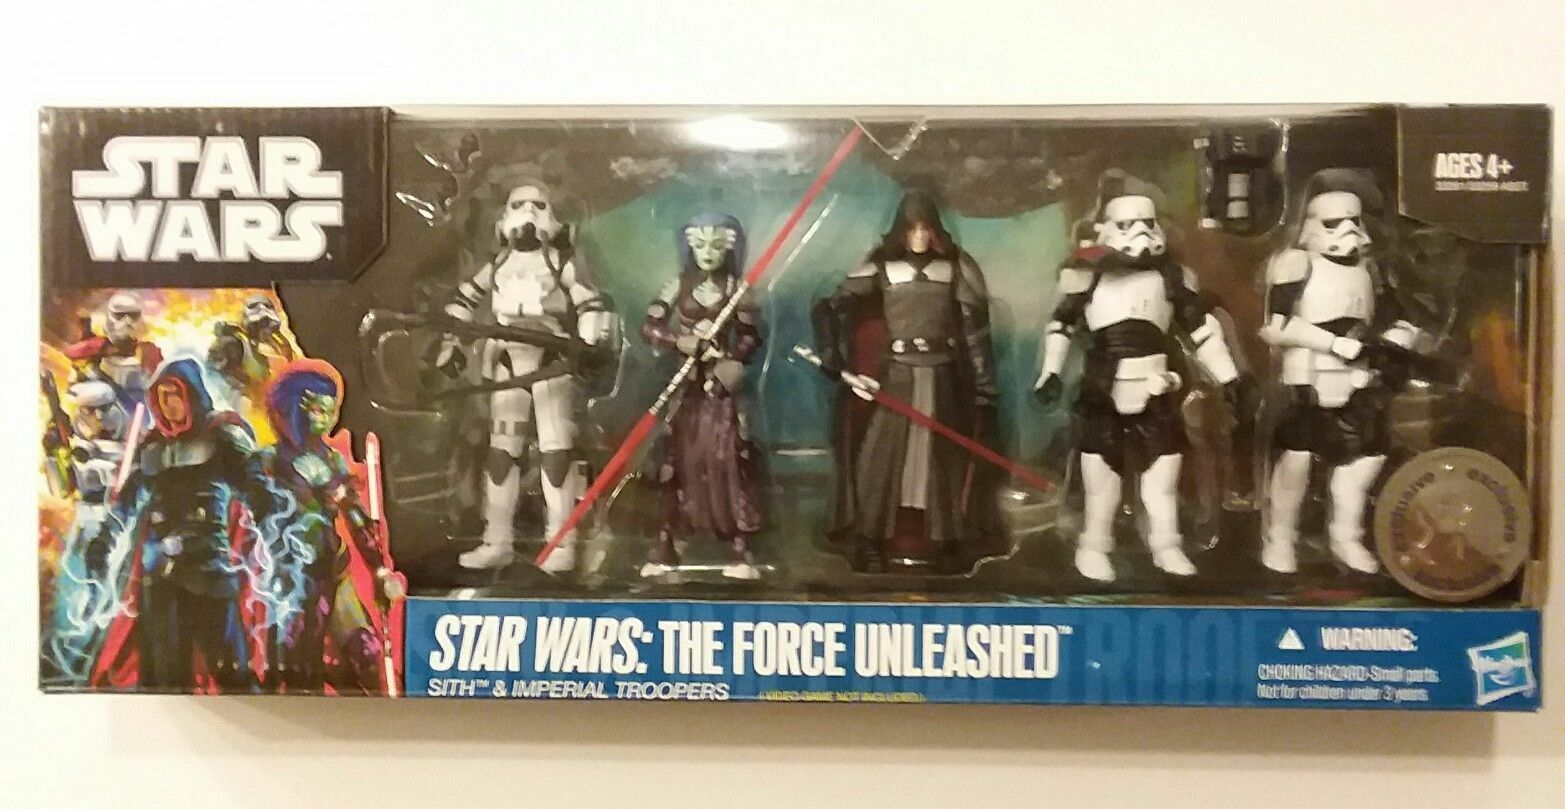 STAR WARS FORCE UNLEASHED STARKILLER GALEN MAREK BRAND NEW PHOBOS SET RARE